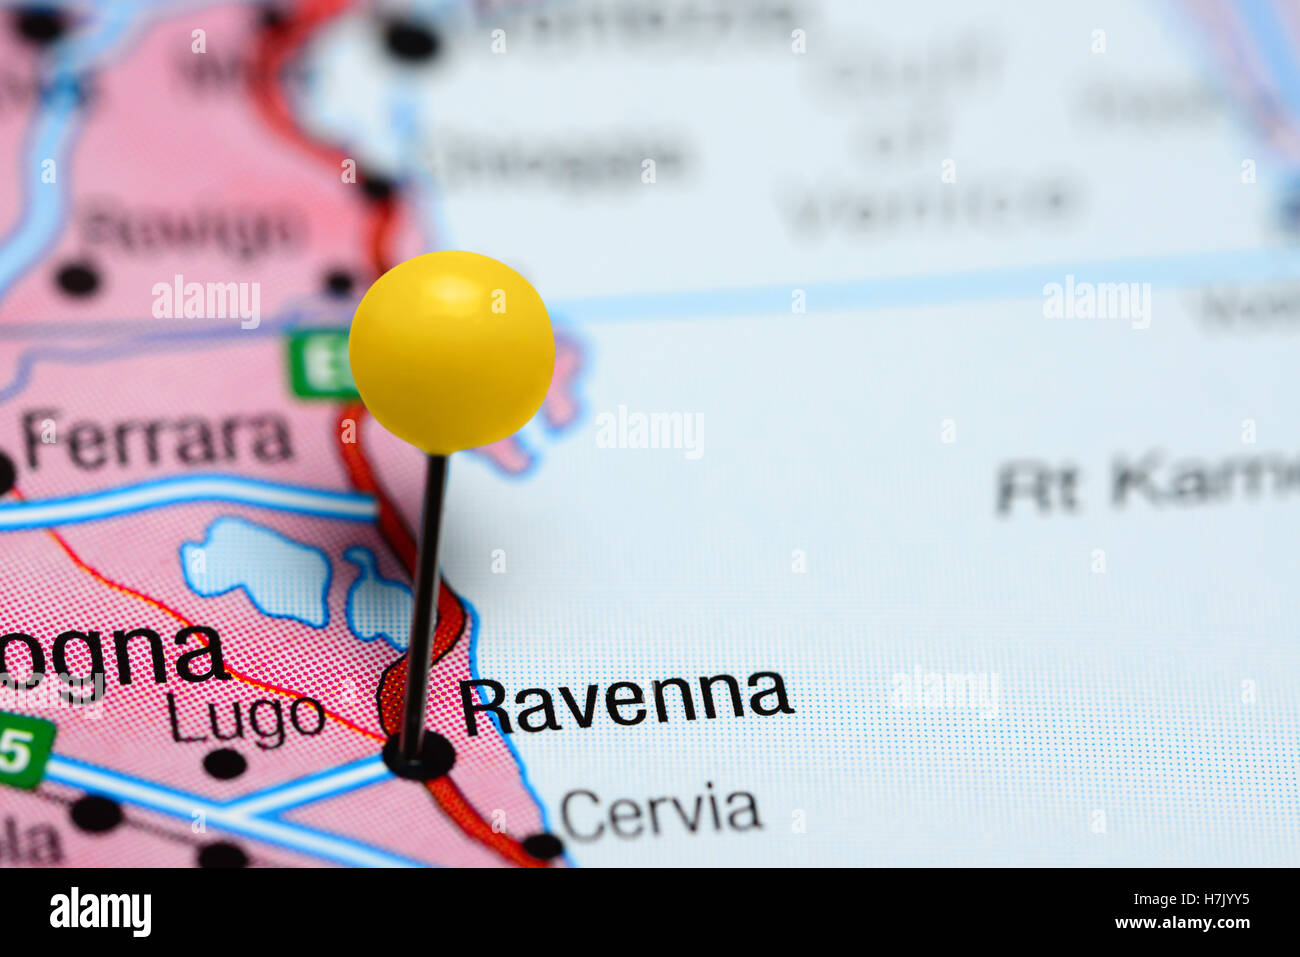 Ravenna pinned on a map of Italy Stock Photo Royalty Free Image